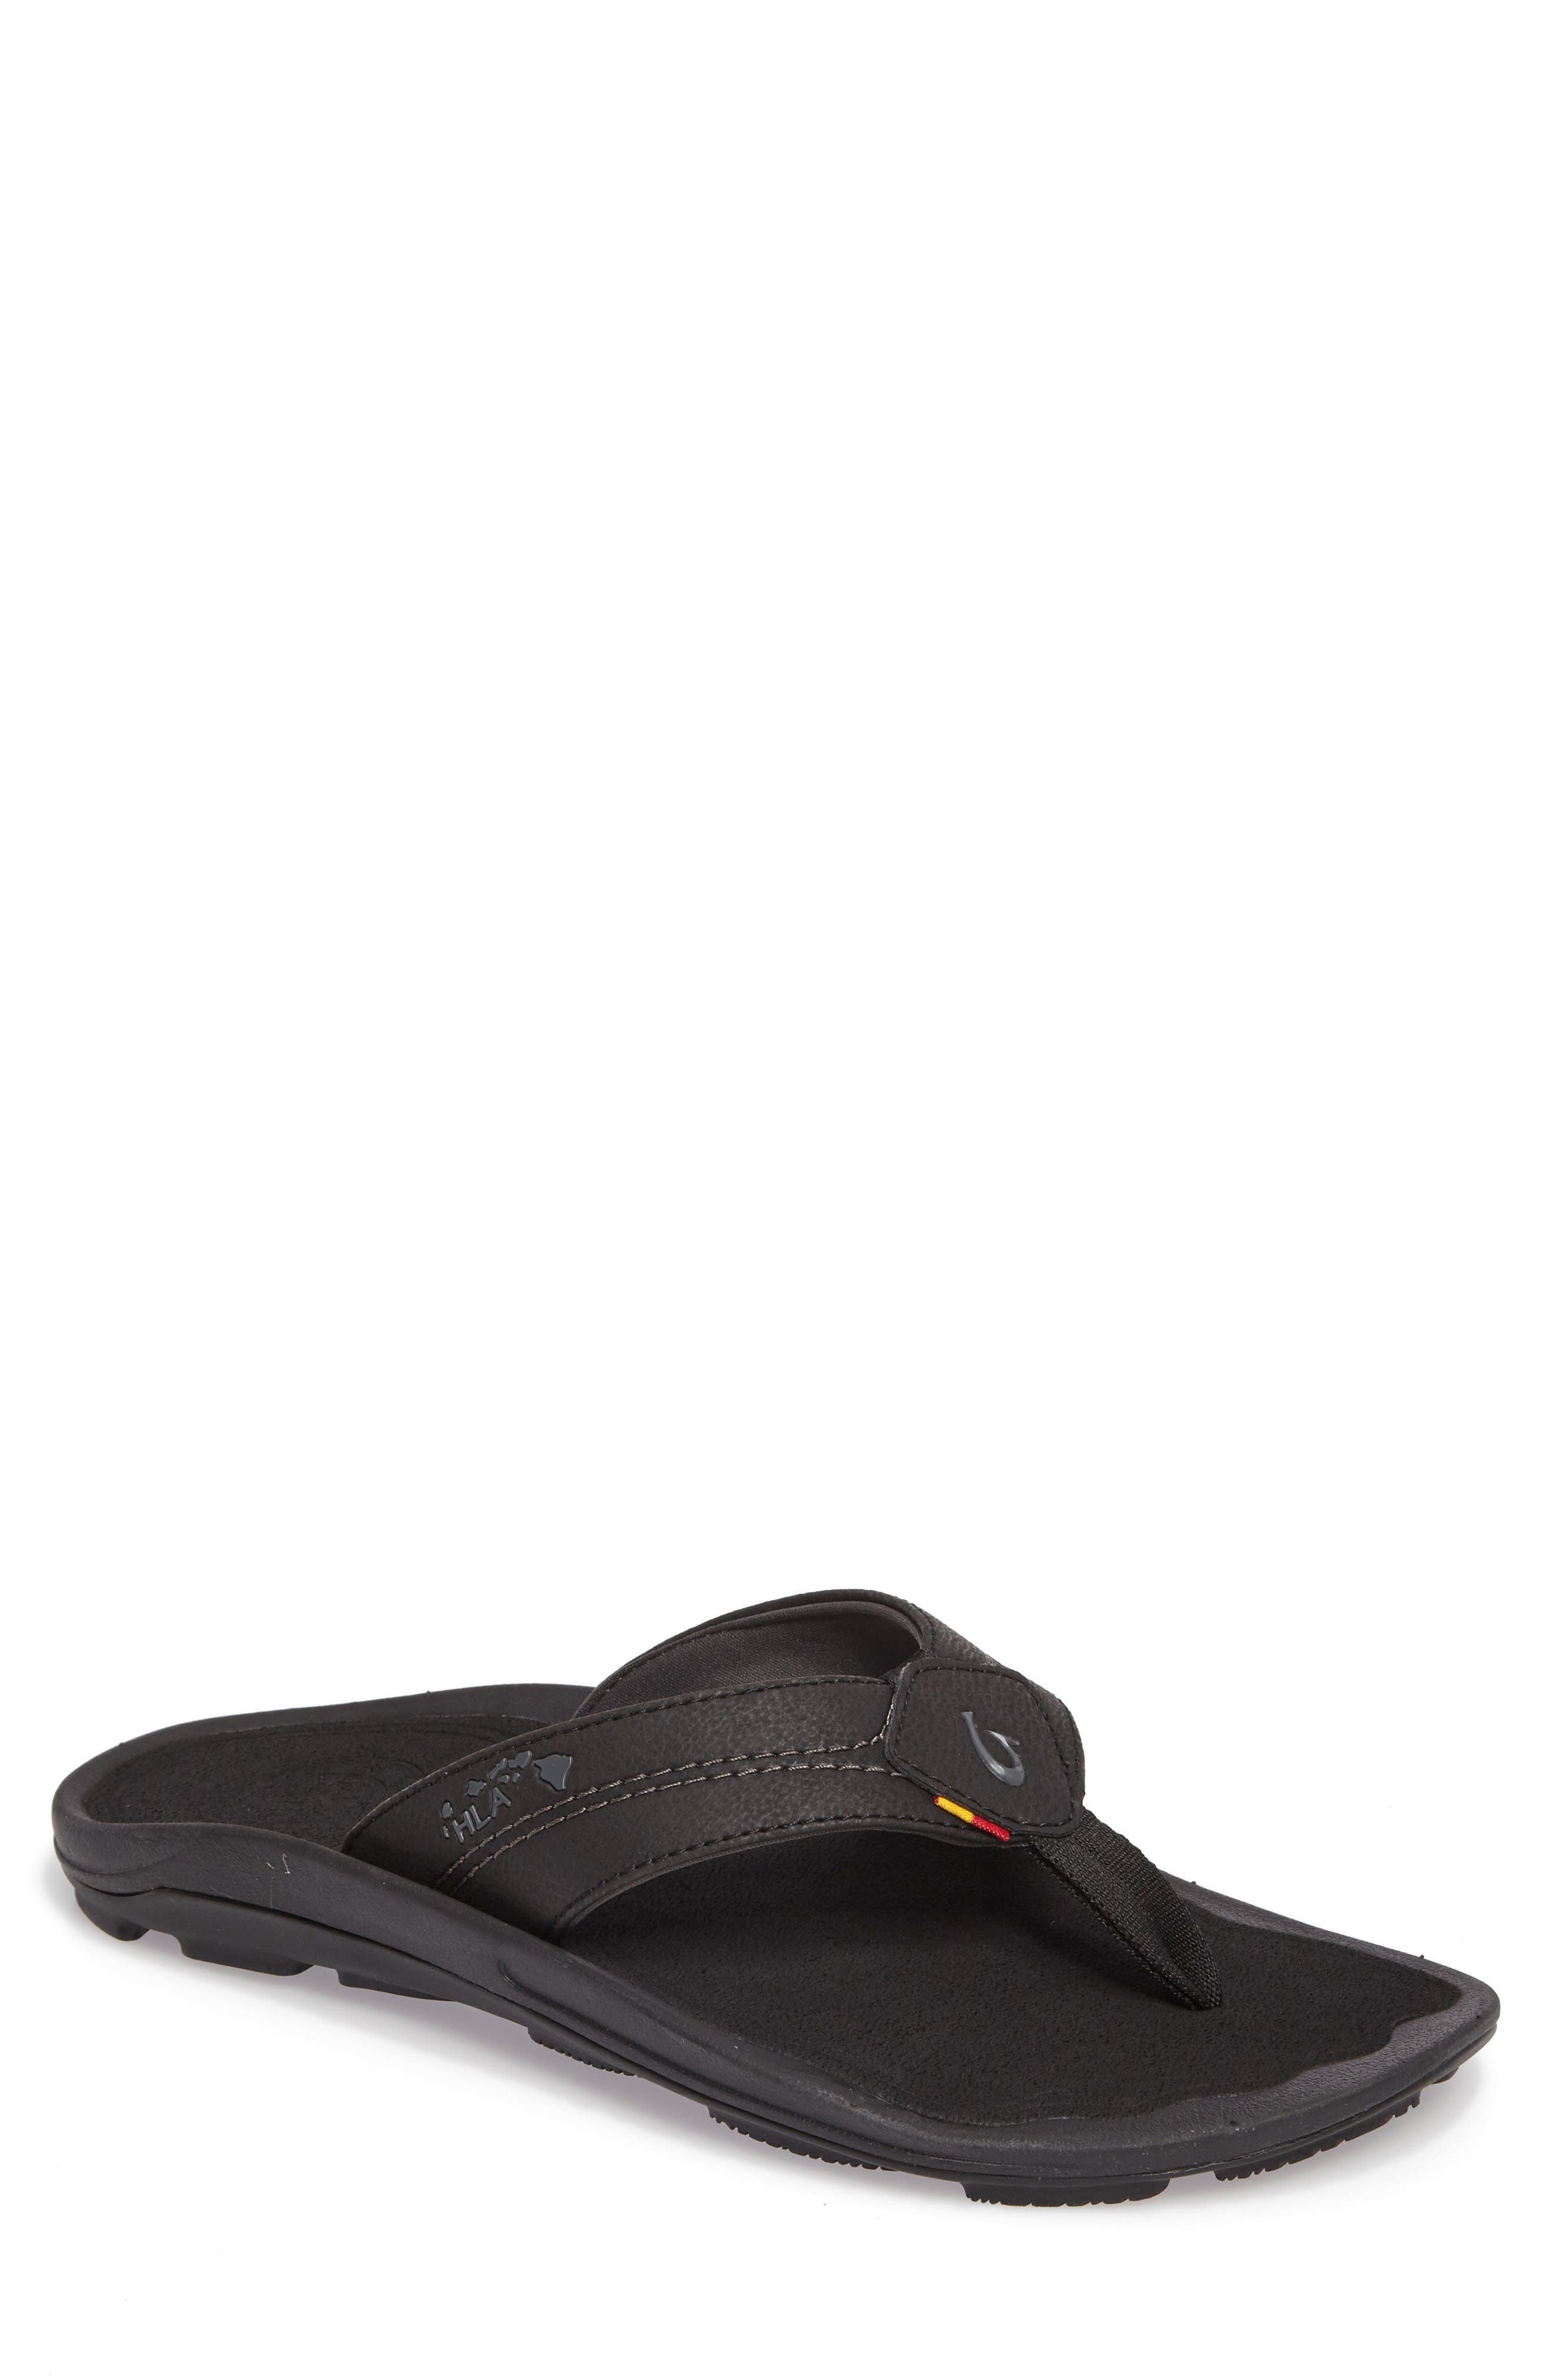 OLUKAI, Kipi Flip Flop, Main thumbnail 1, color, BLACK/ BLACK